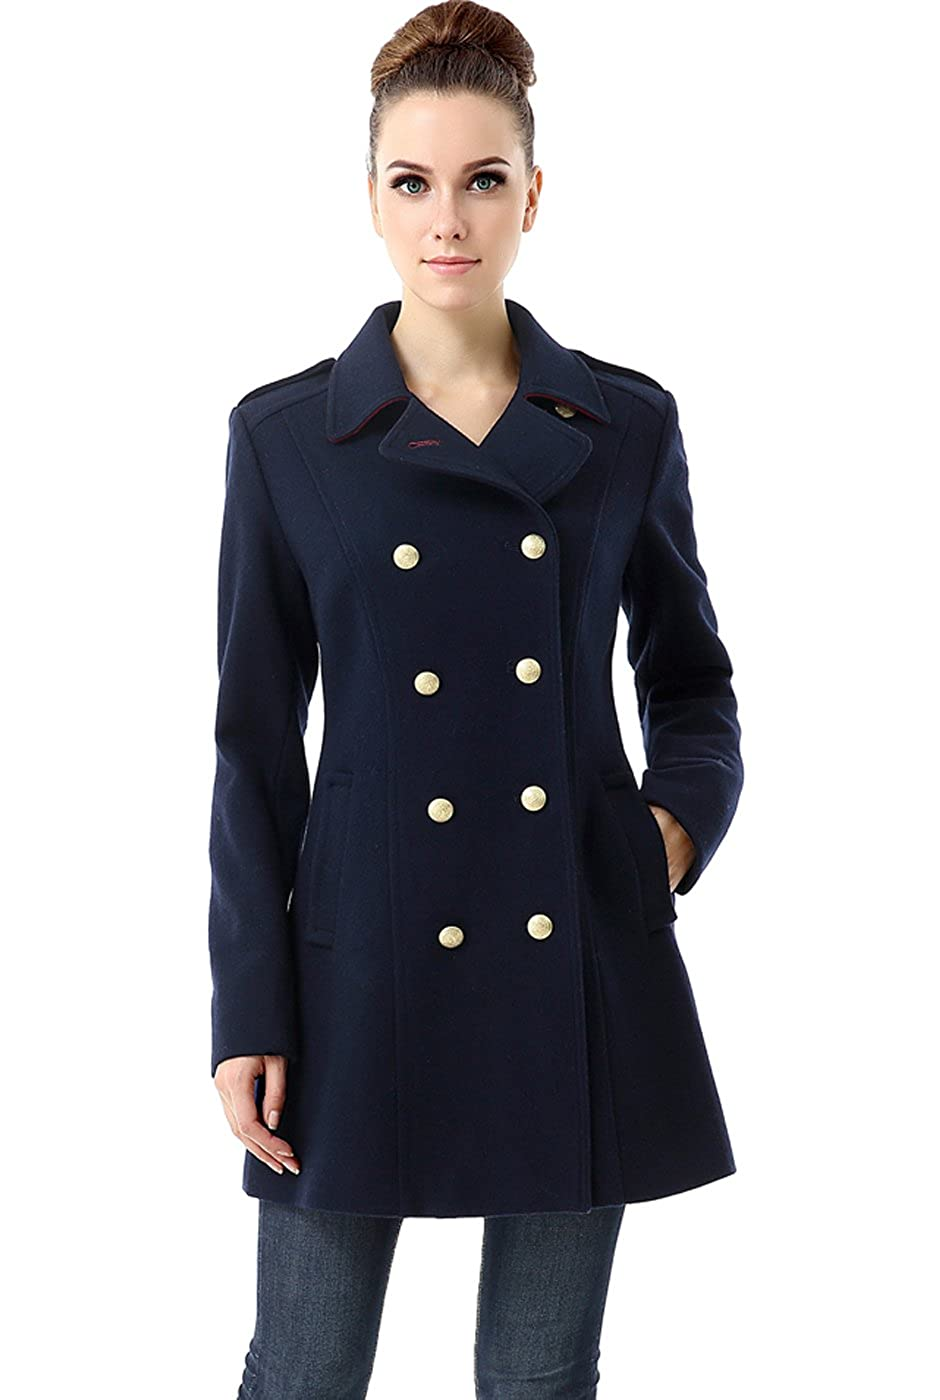 BGSD Womens Victoria Wool Blend Fitted Military Melton Coat